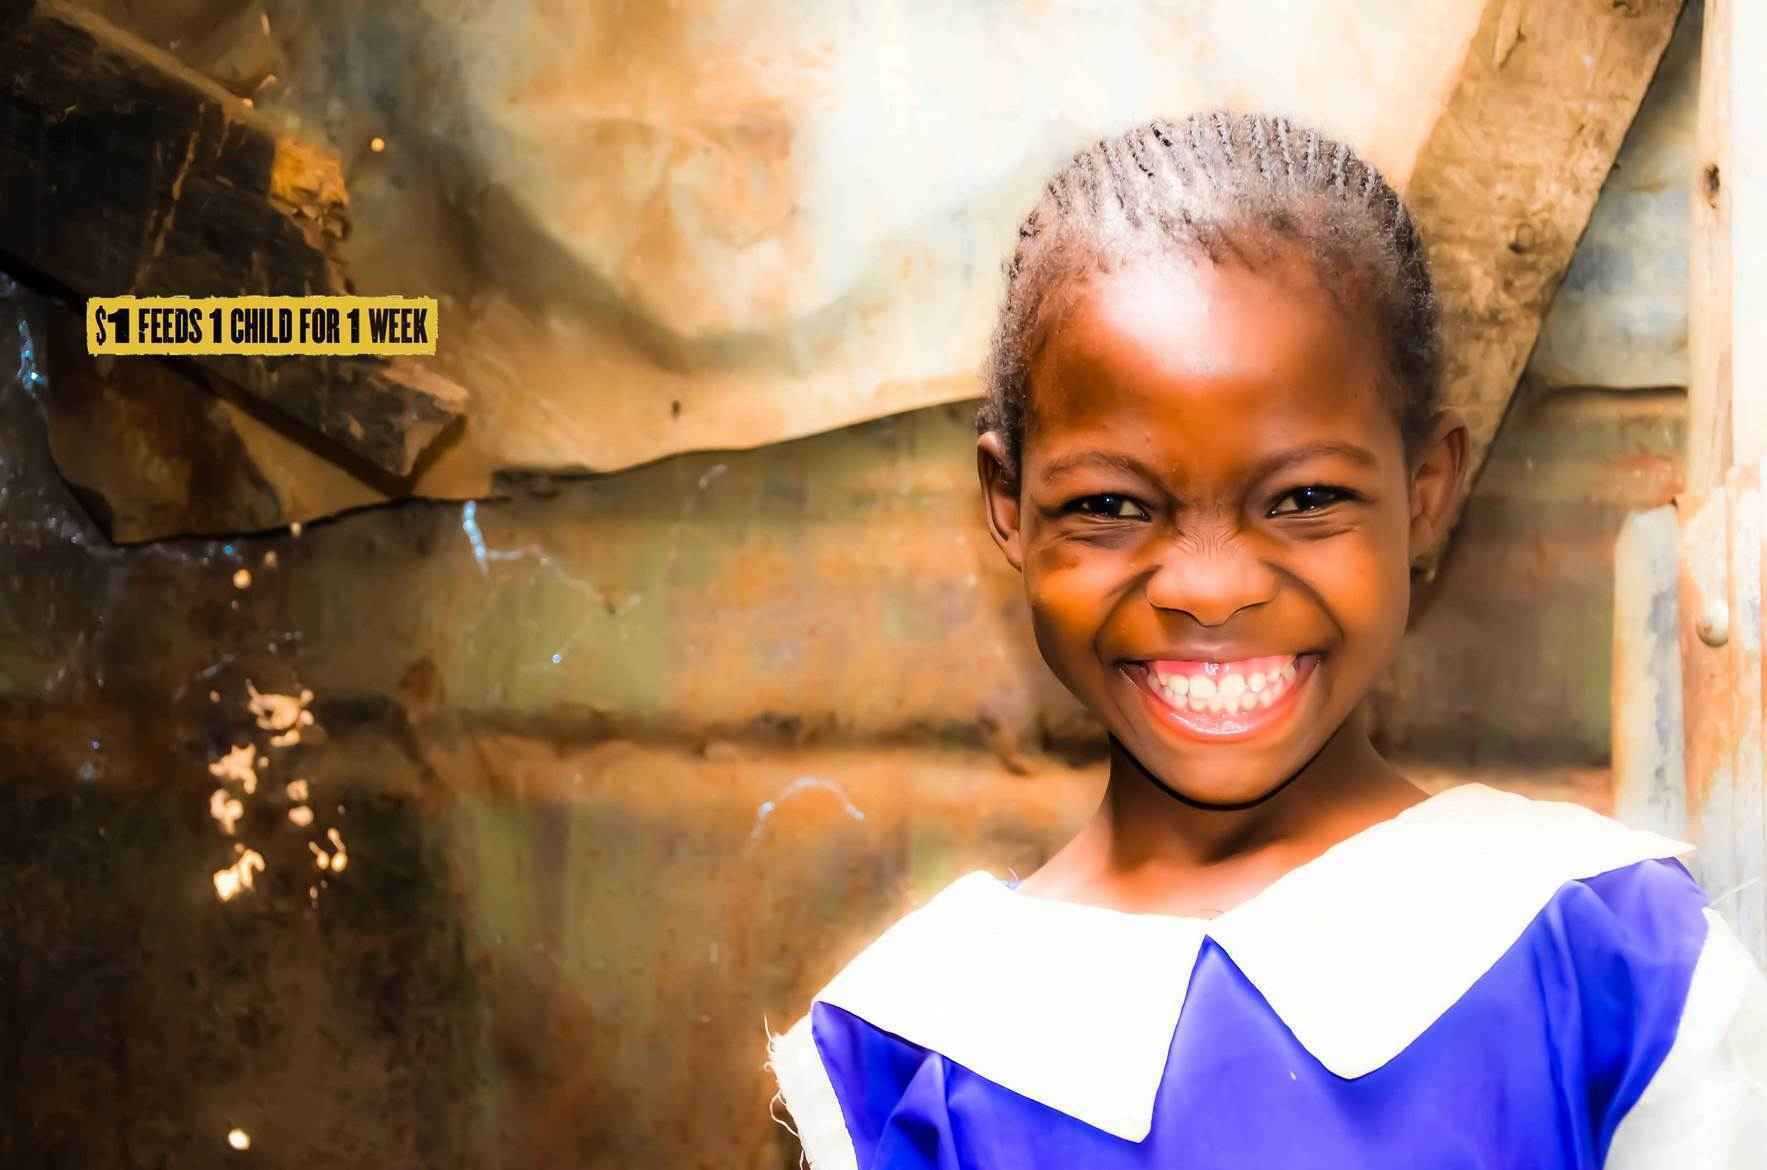 Donate as a monthly partner to feed children in the slums of Nairobi! image